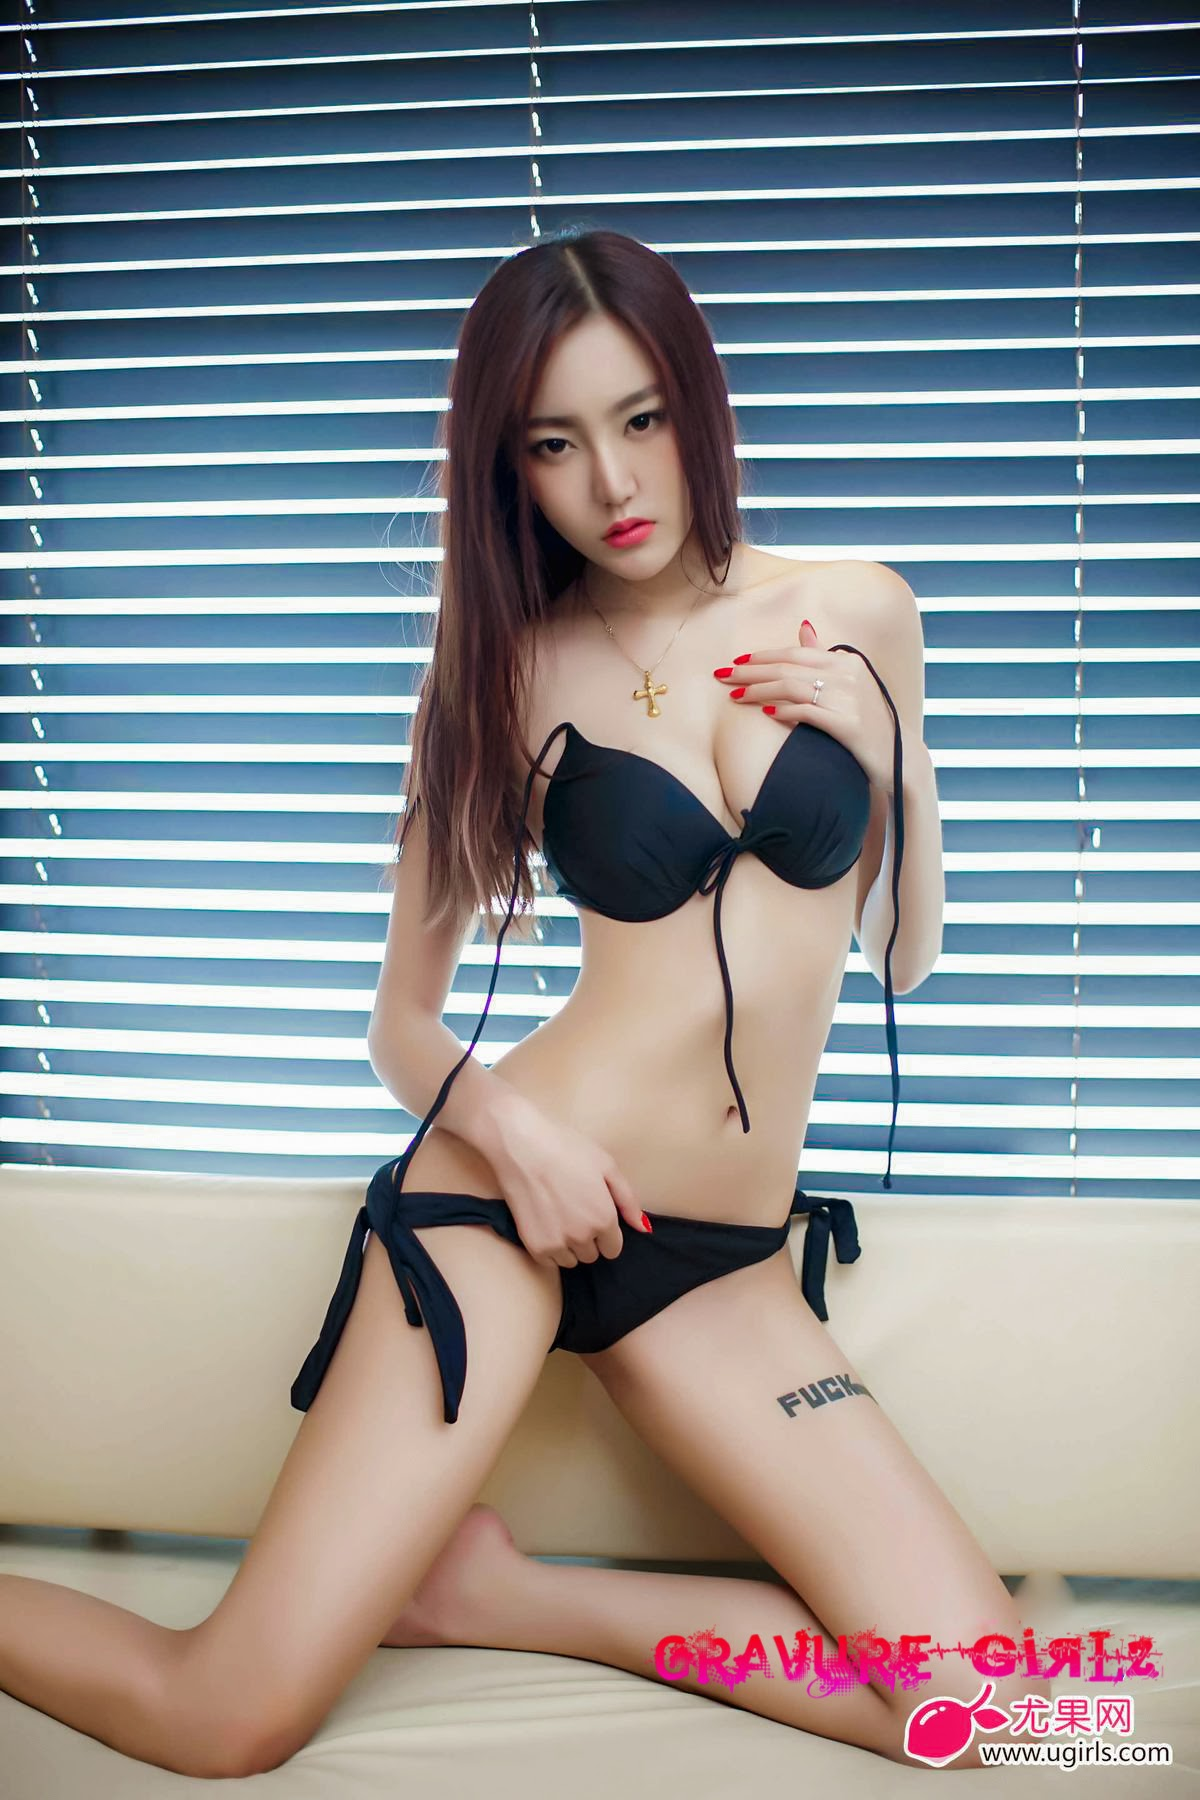 Chi Wan Guo 湿婉郭 | Young Chinese Girl Hot!